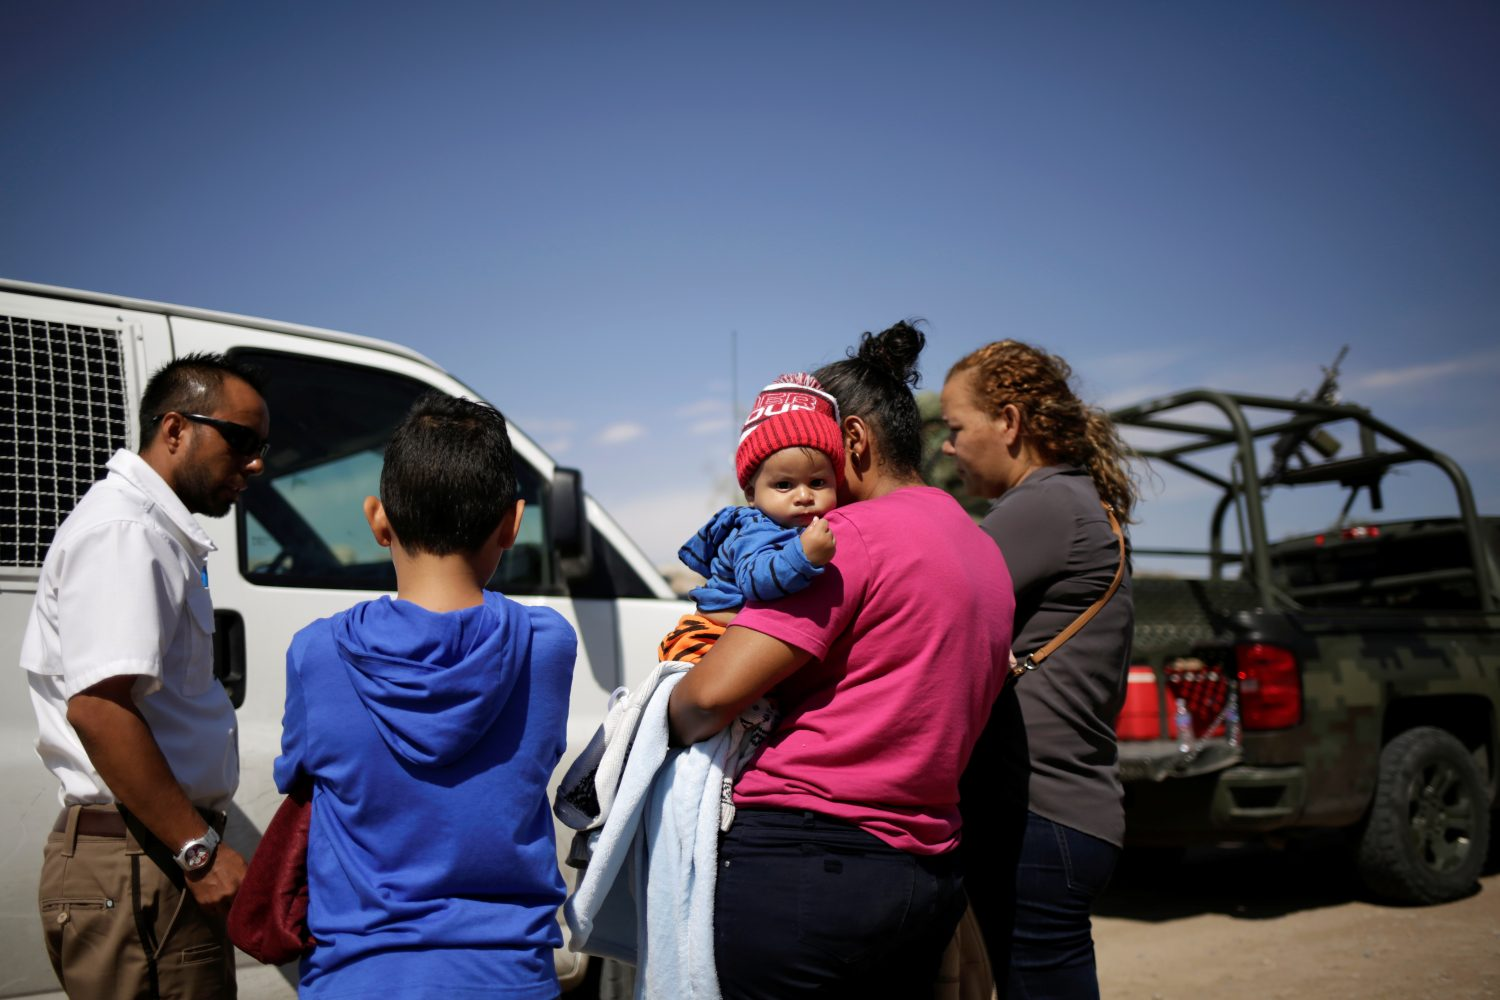 An agent of the National Migration Institute (INM) talks to Honduran migrants after being stopped from crossing the border into the United States by members of the Mexican National Guard, in Ciudad Juarez, Mexico June 28, 2019. REUTERS/Jose Luis Gonzalez